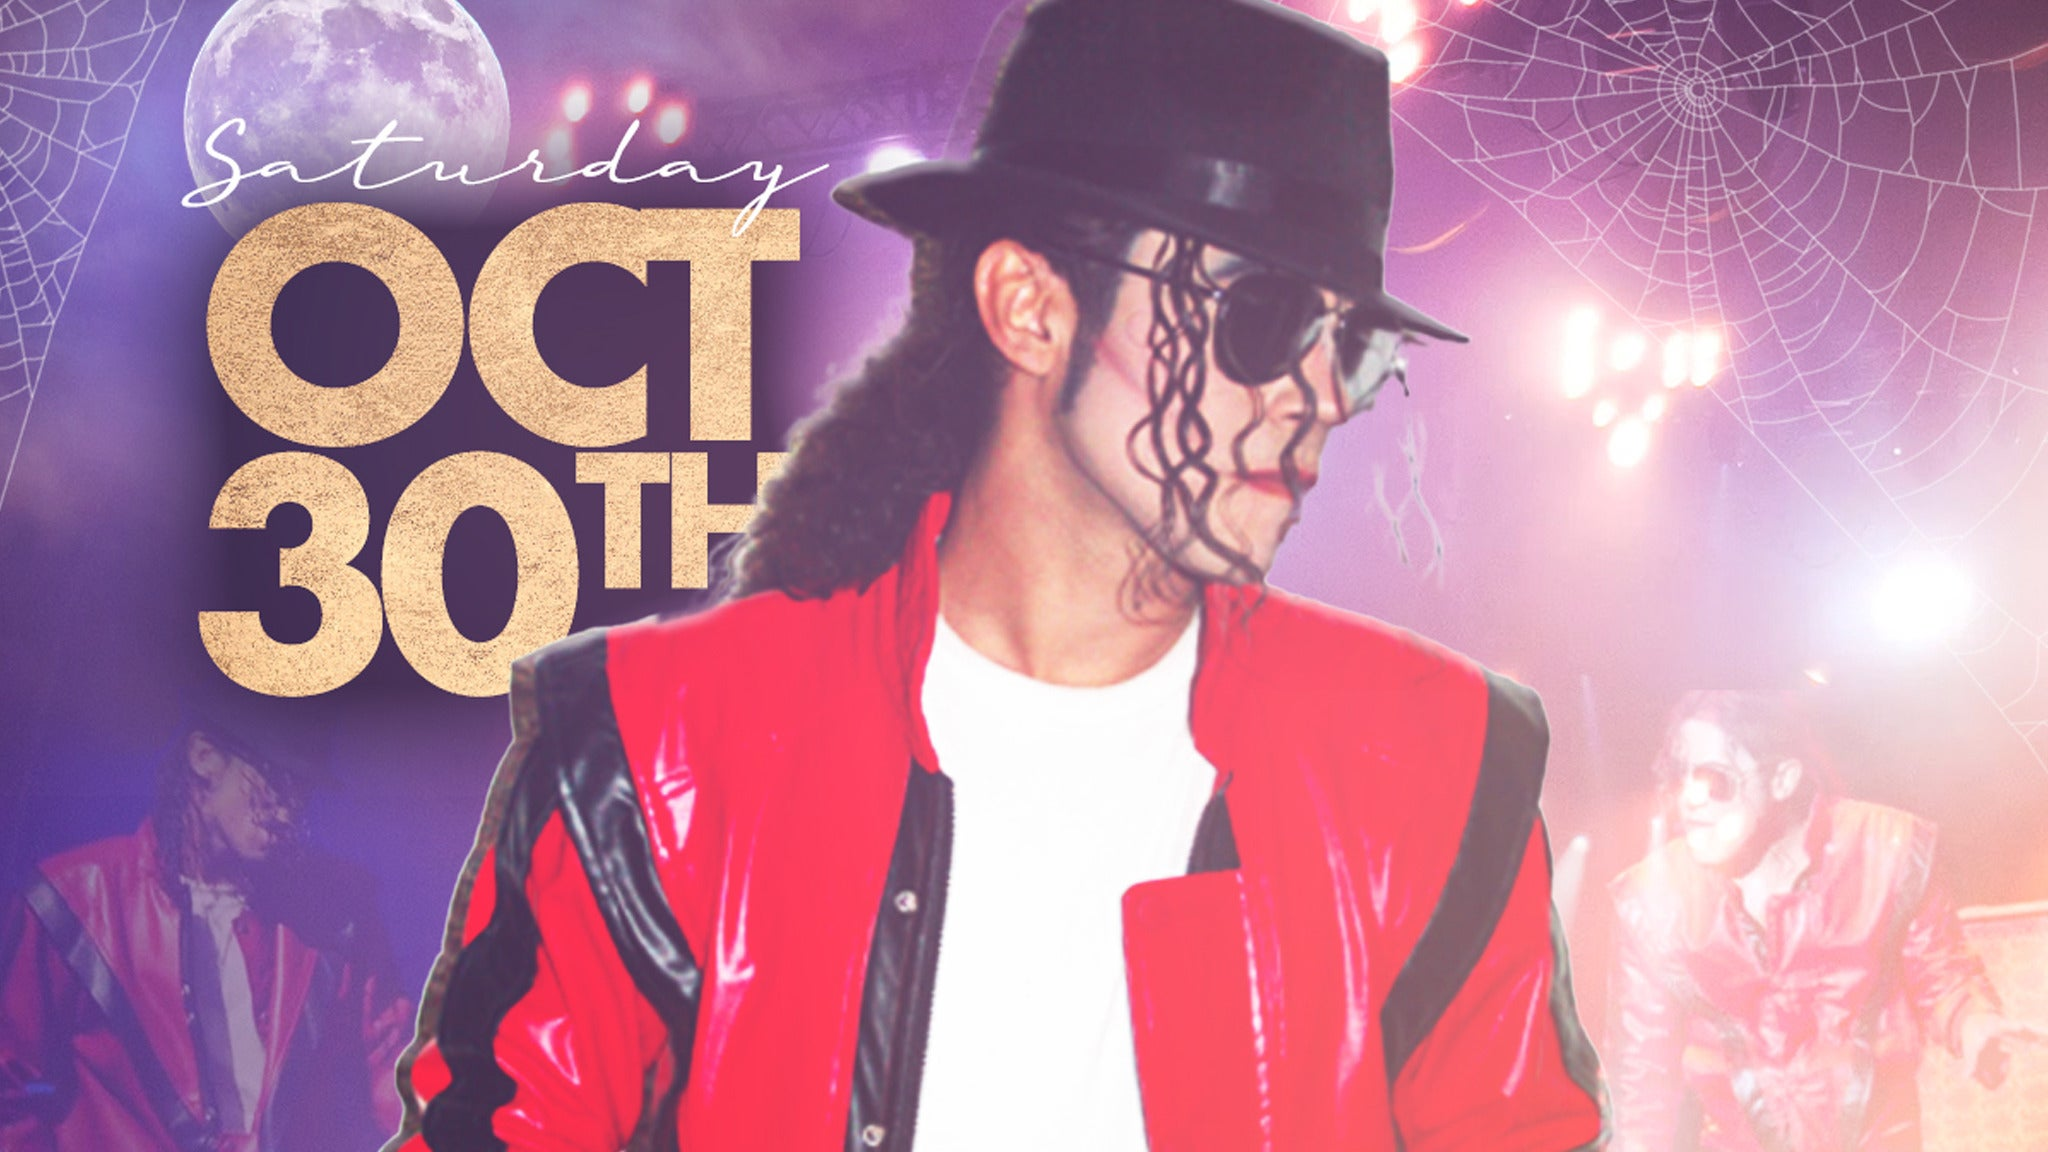 The MJ Experience: A Halloween Celebration of Thriller presale password for early tickets in Chesterfield